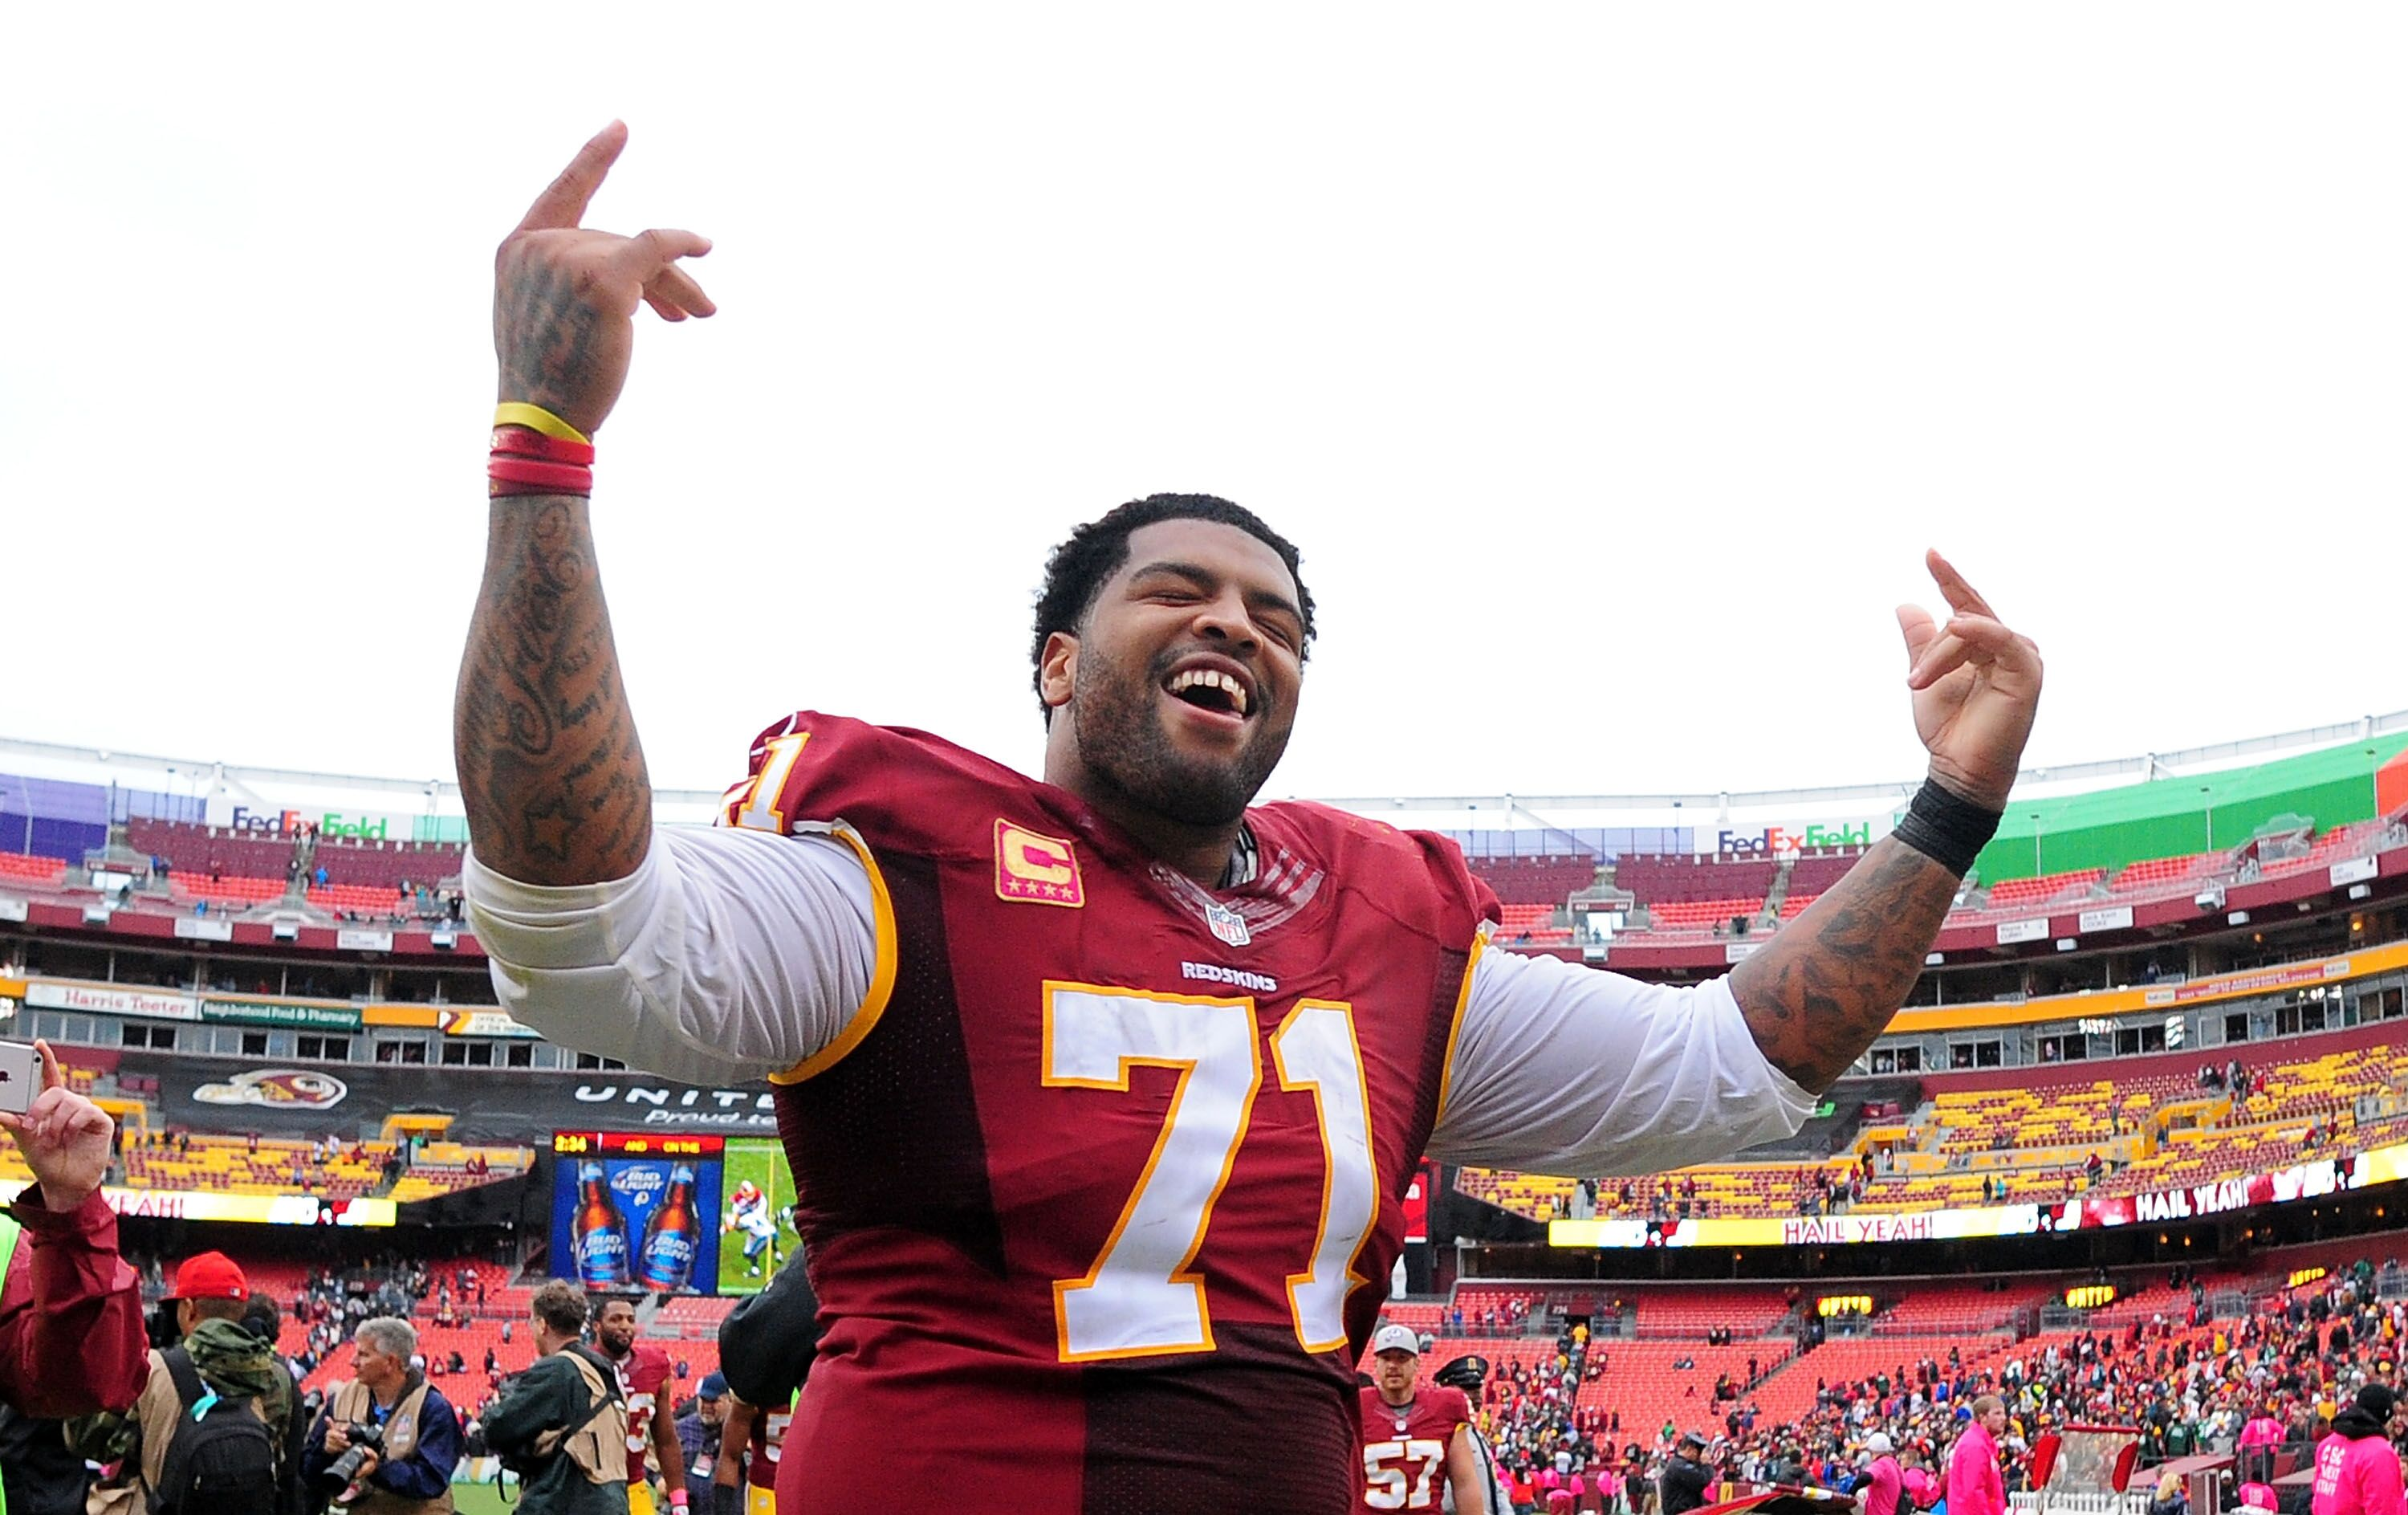 Madden Ratings: Trent Williams top-ranked Redskins player, Alex Smith leads 'Skins QBs